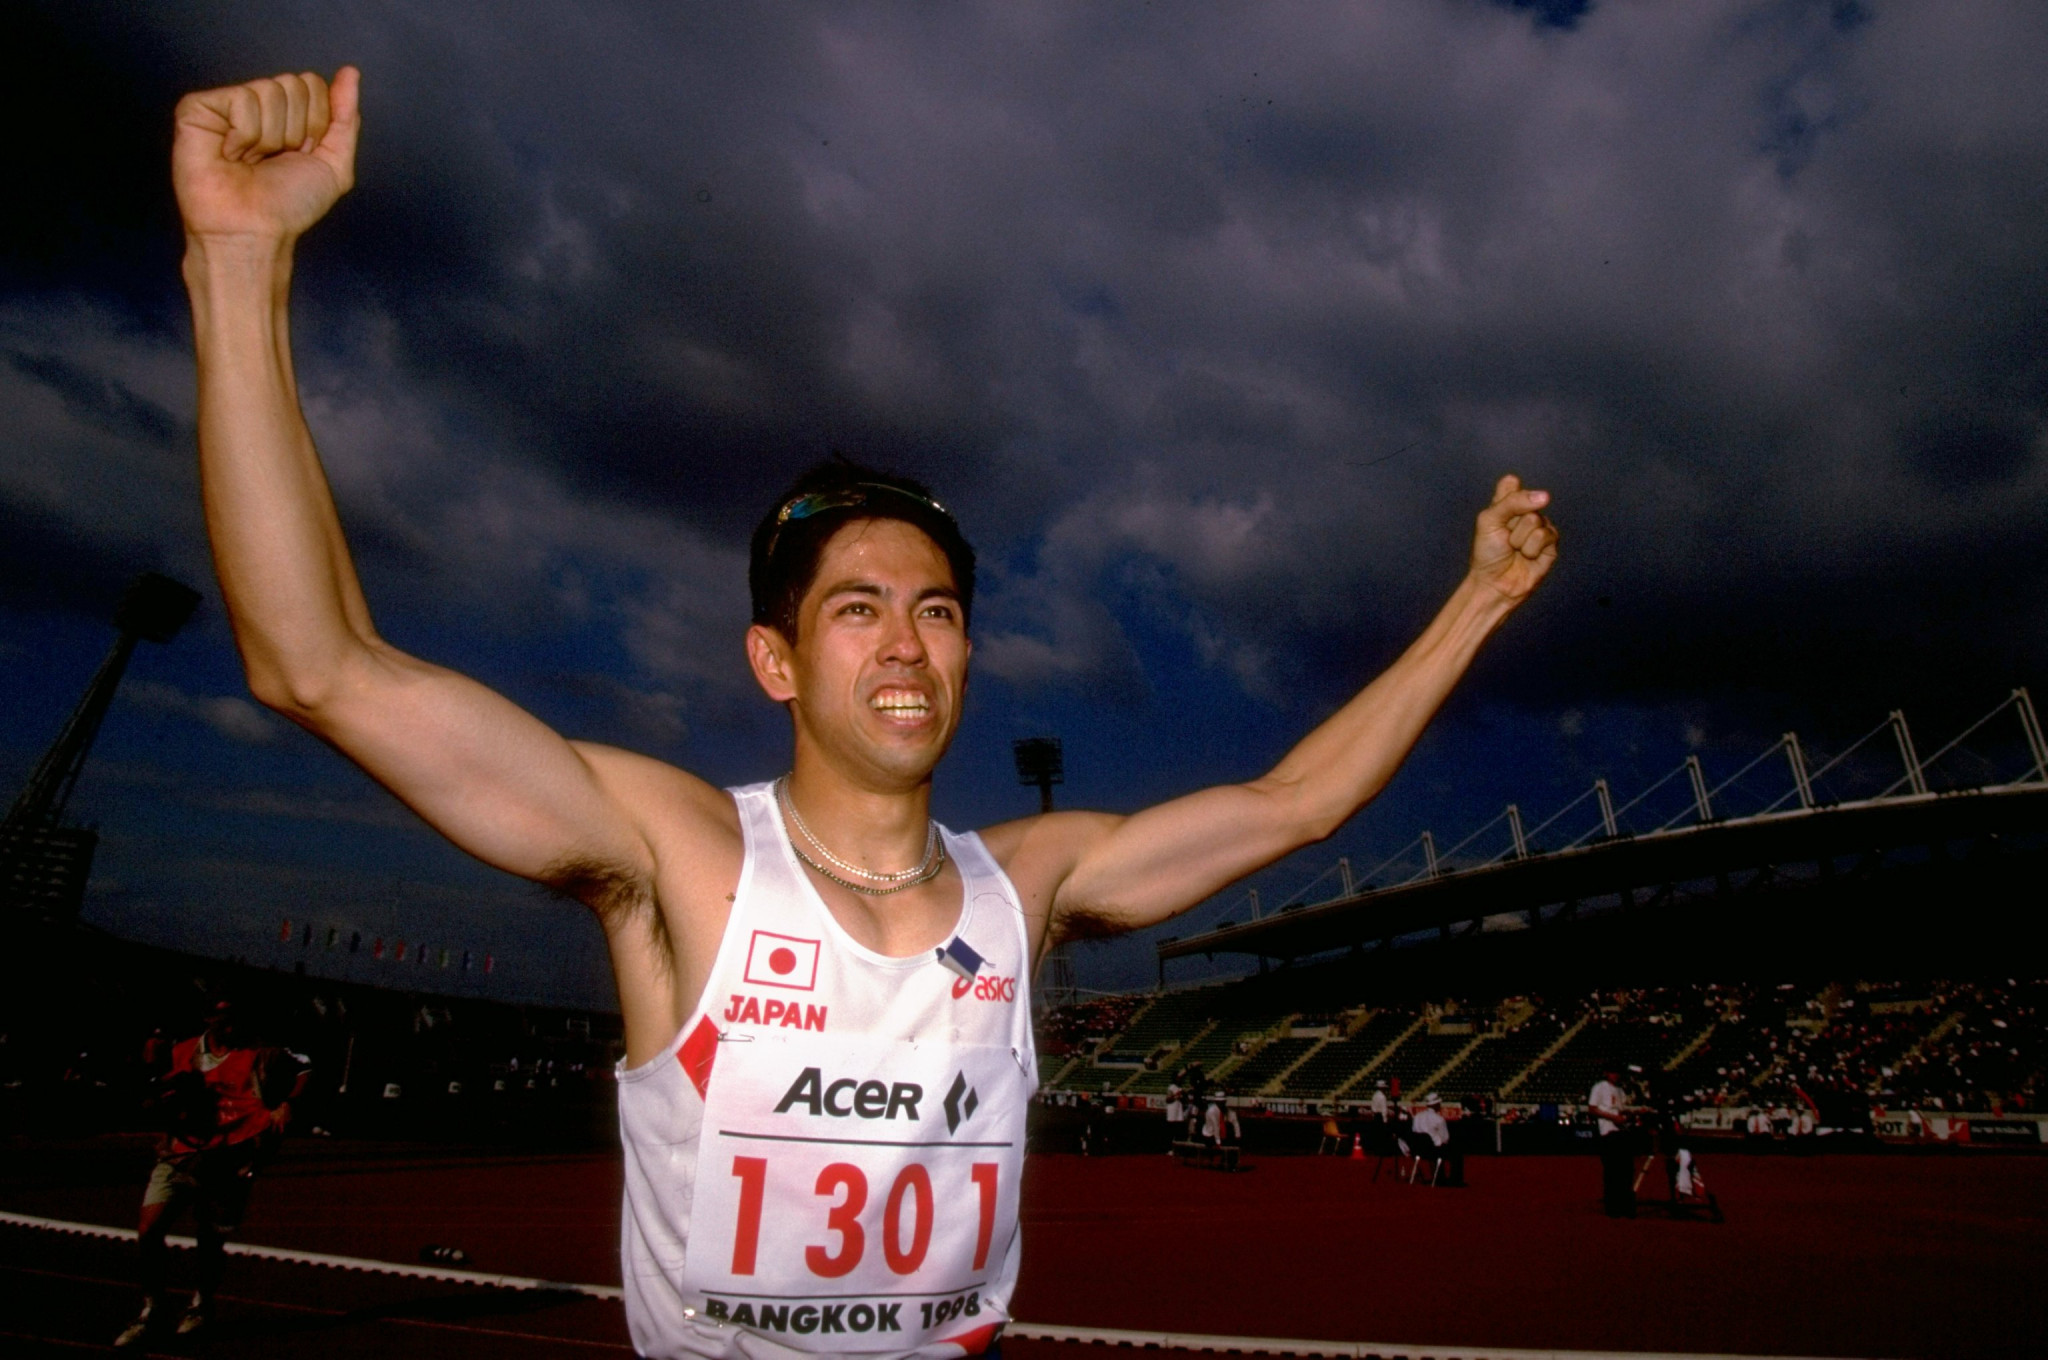 Japanese sprinter Koji Ito won the first award in 1998 ©Getty Images